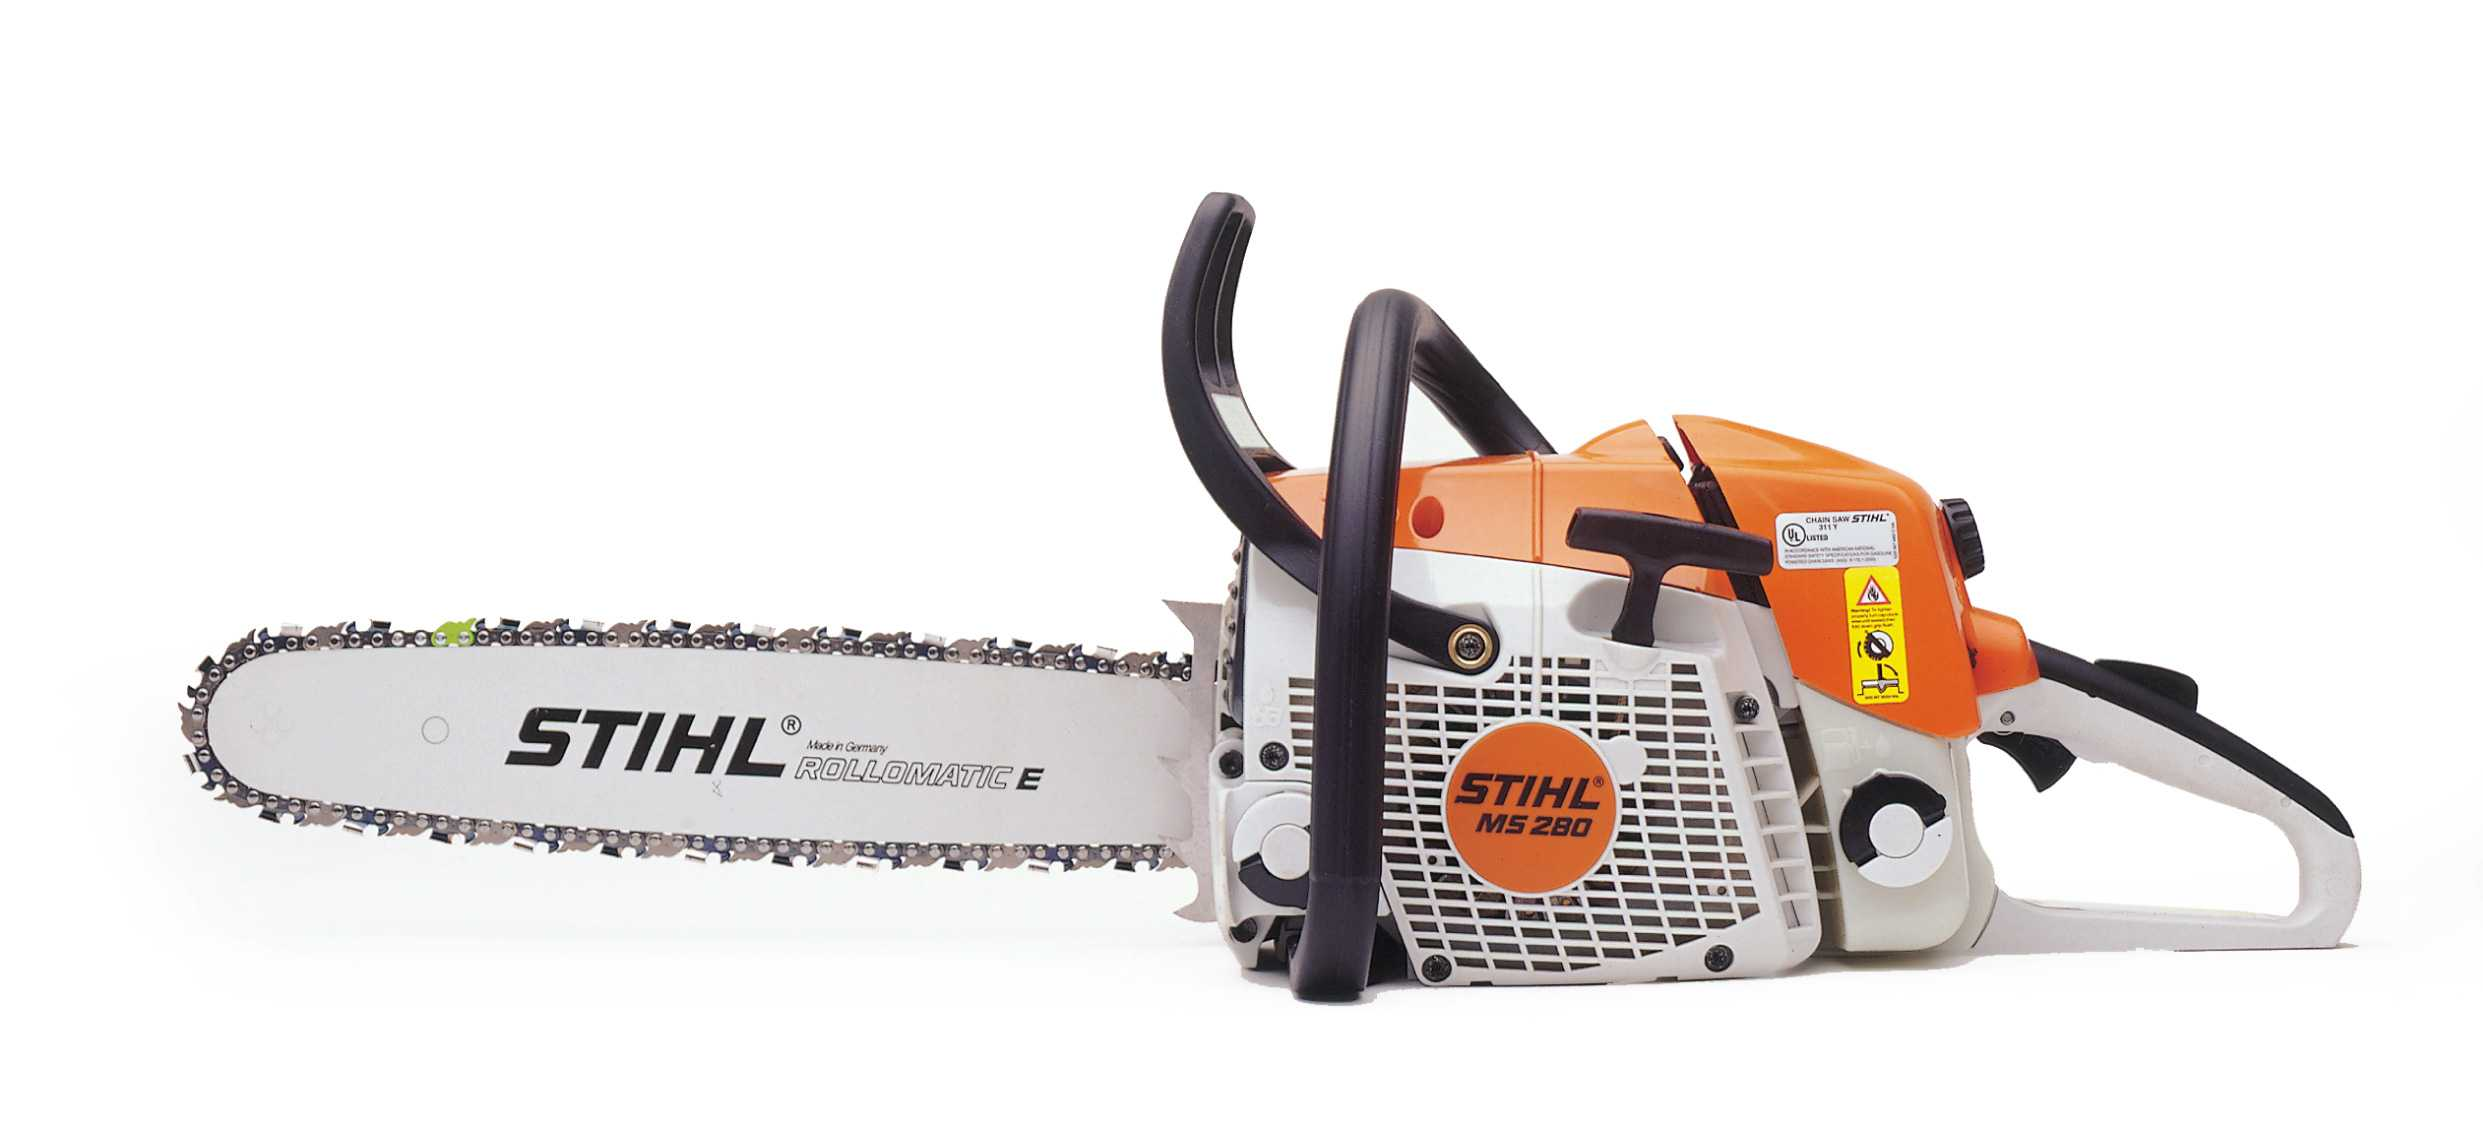 cpsc stihl inc announce recall of chain saws. Black Bedroom Furniture Sets. Home Design Ideas